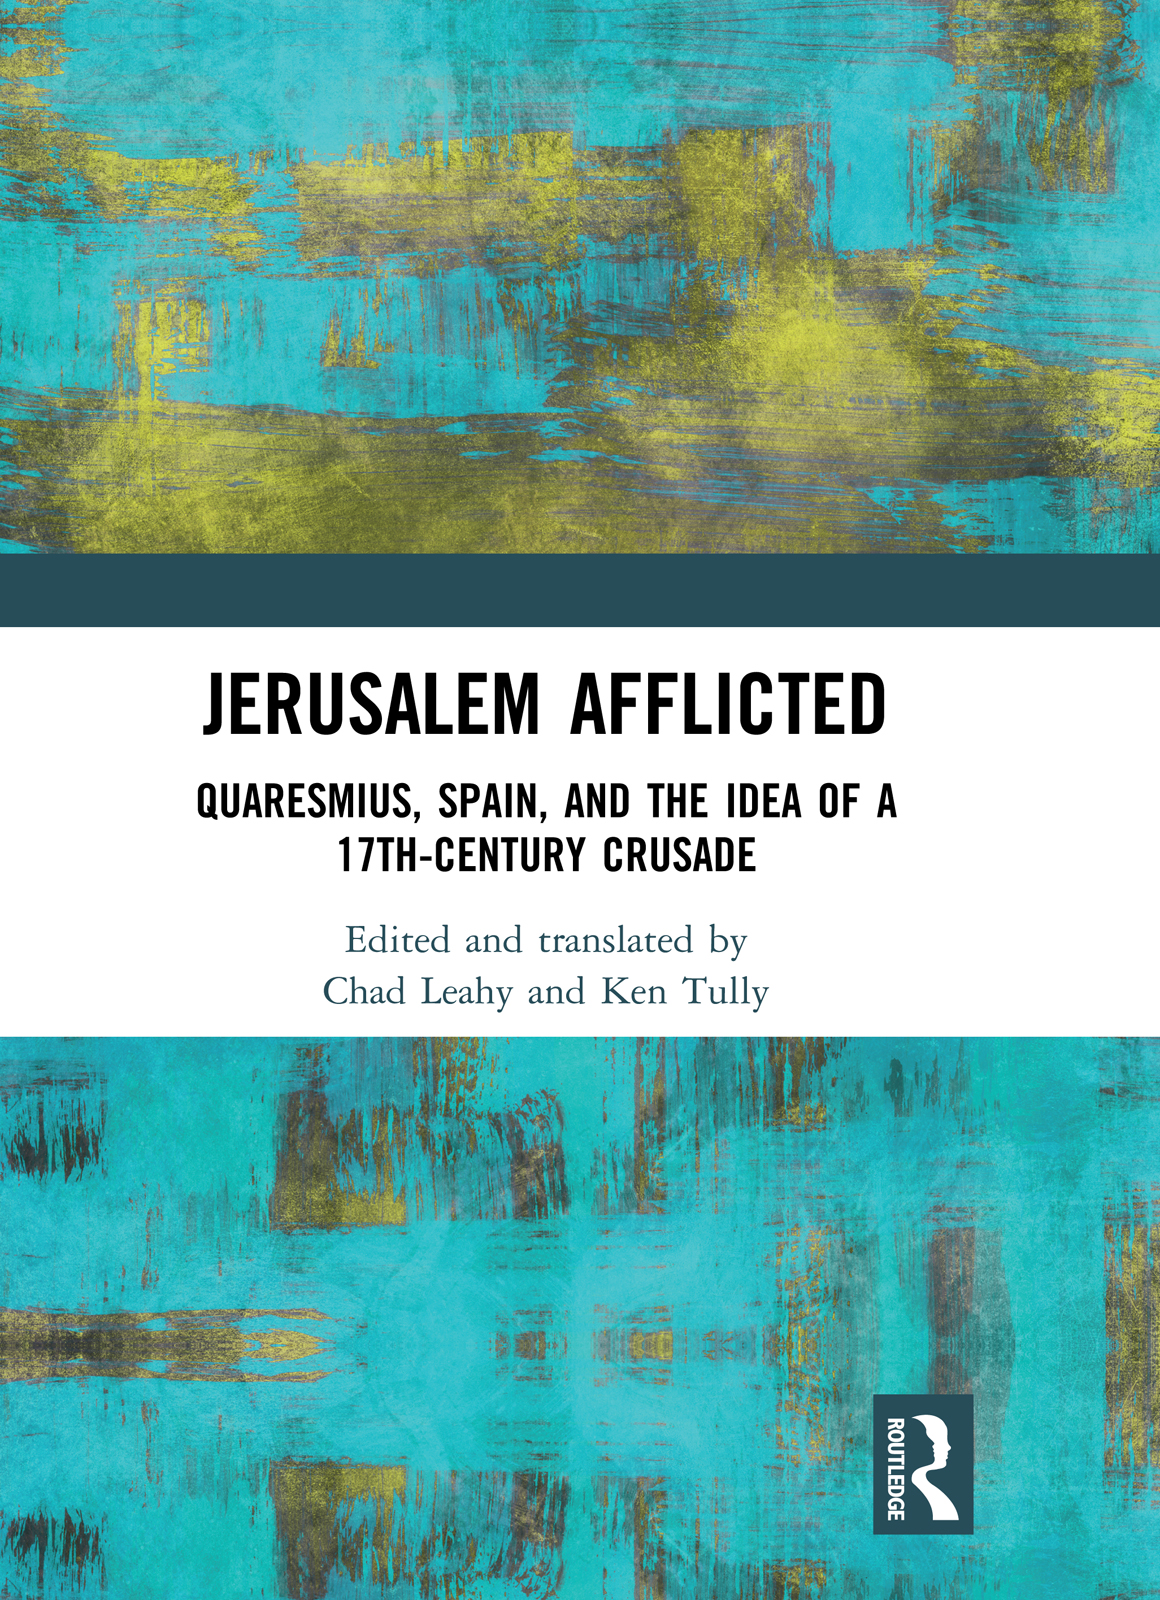 Jerusalem Afflicted: Quaresmius, Spain, and the Idea of a 17th-century Crusade book cover